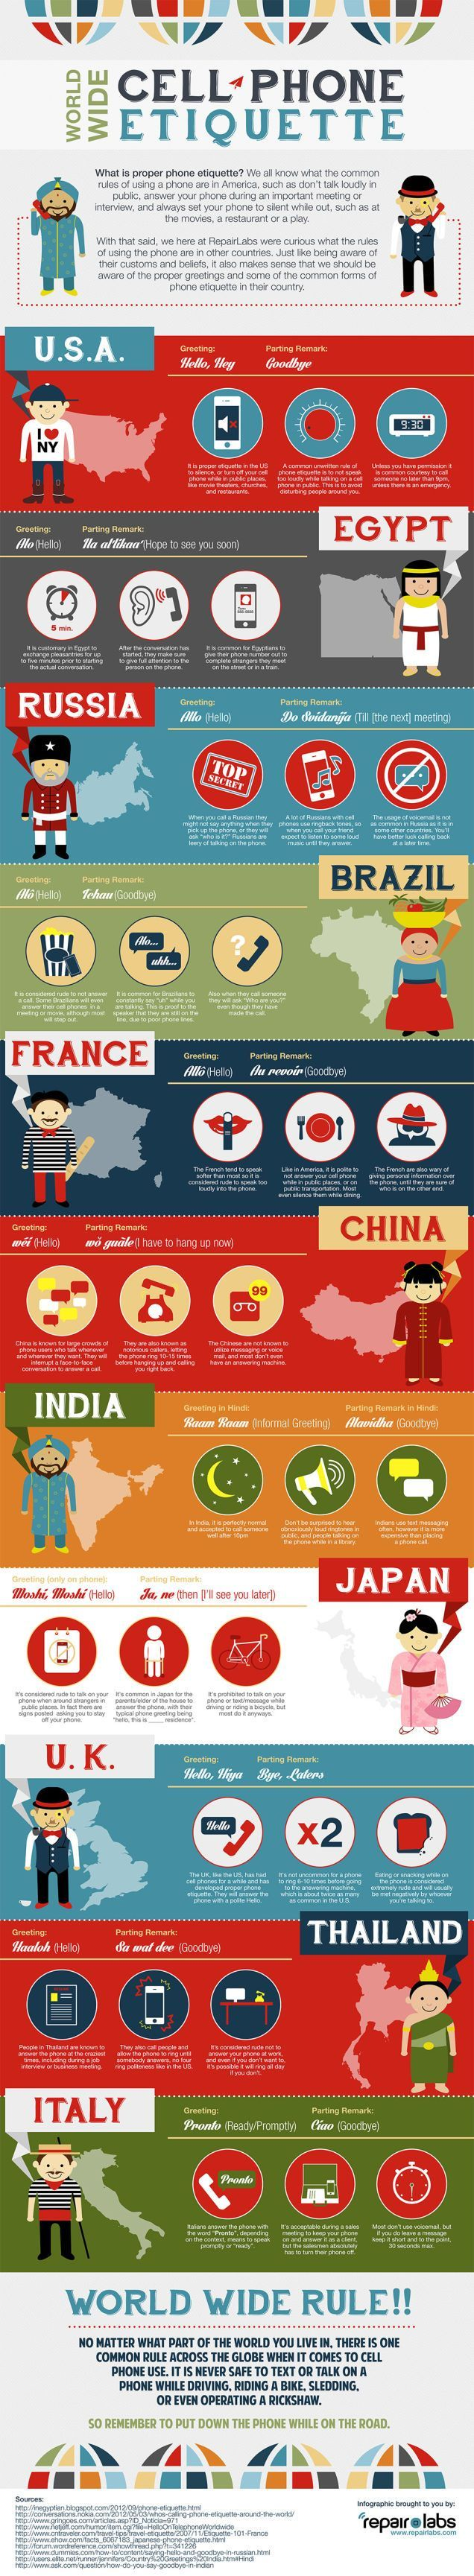 Cell Phone Etiquette Around the World by repairlabs via lifehacker #Infographic #Cell_Phone_Etiquette